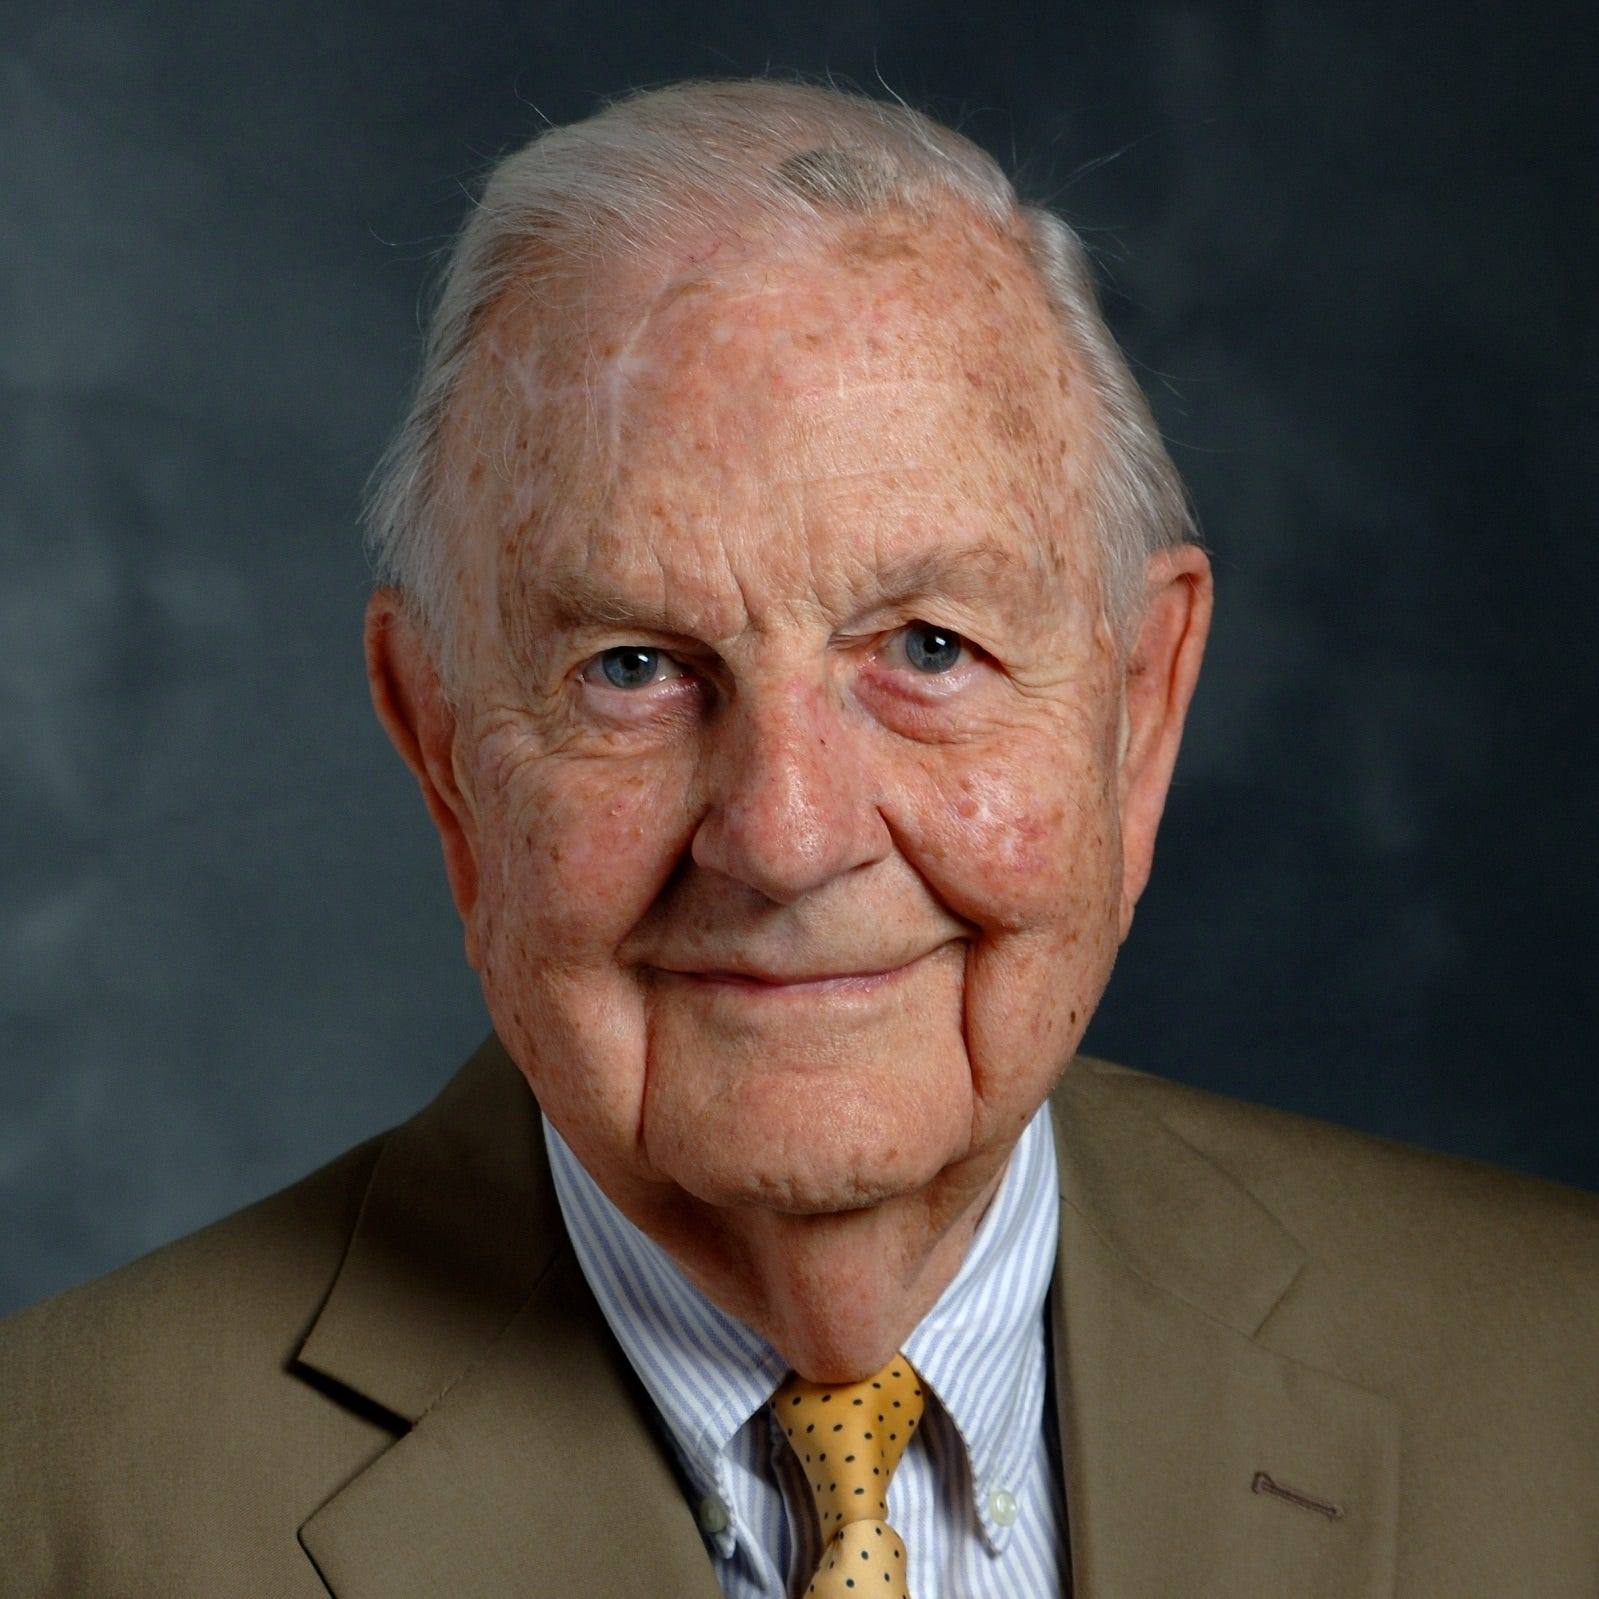 James Bass Sr. of prominent law firm Bass, Berry & Sims dies at 108